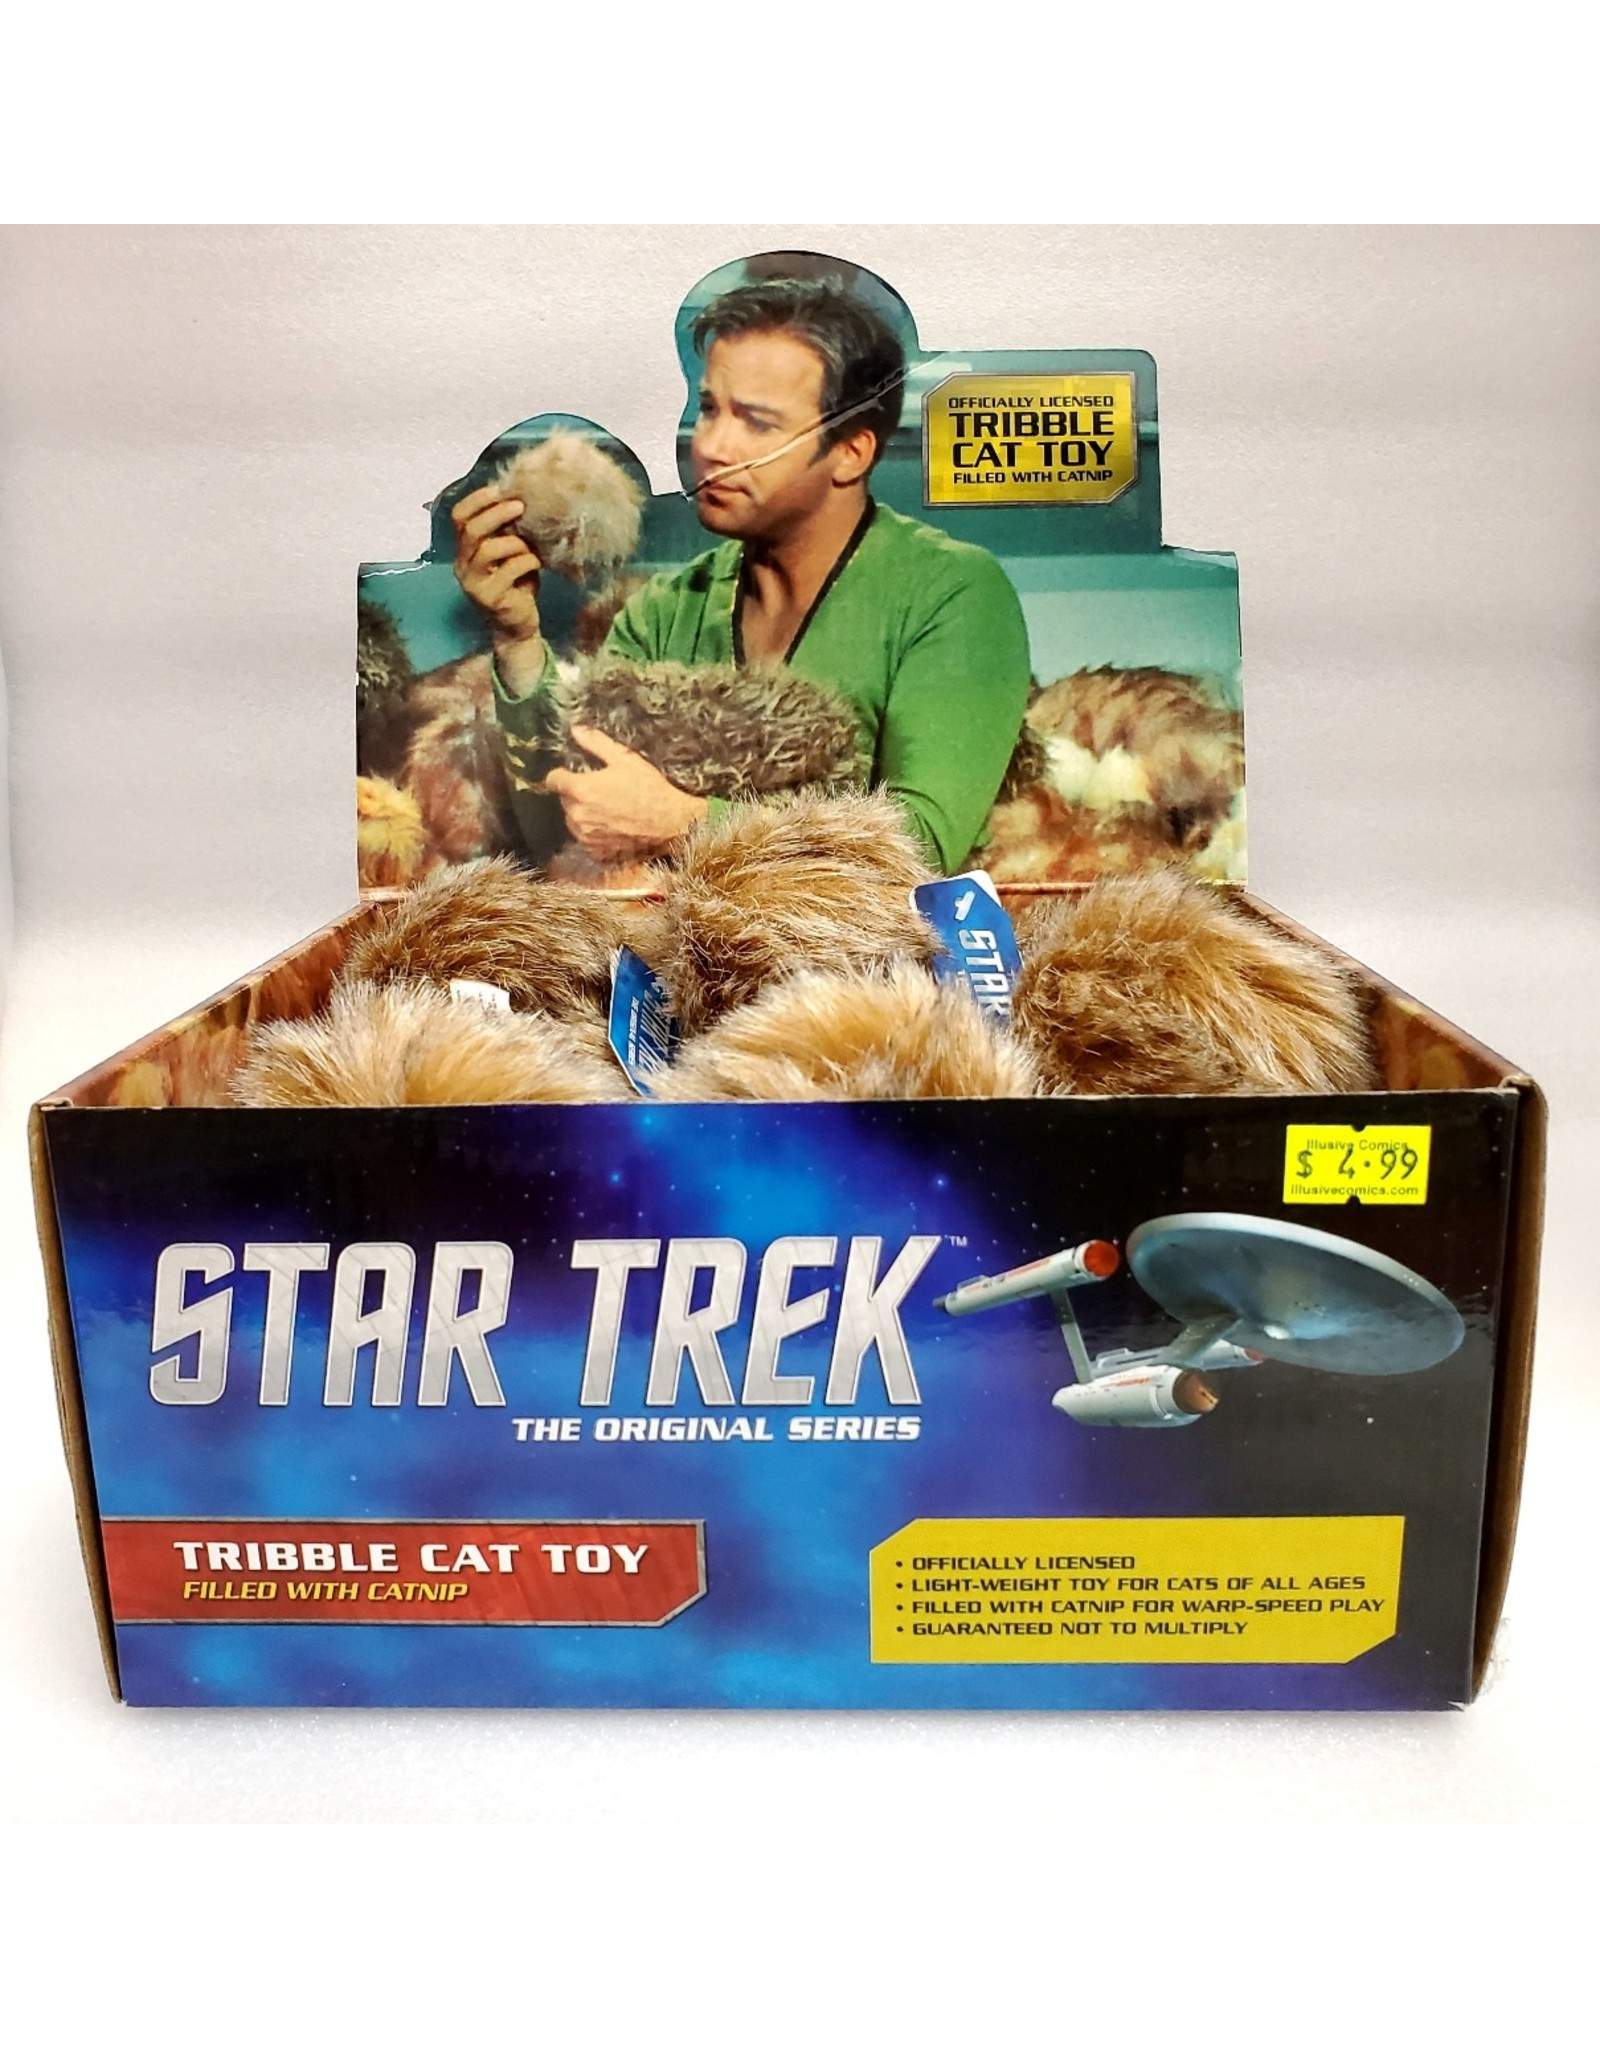 CROWDED COOP STAR TREK TOS TRIBBLE CAT TOY